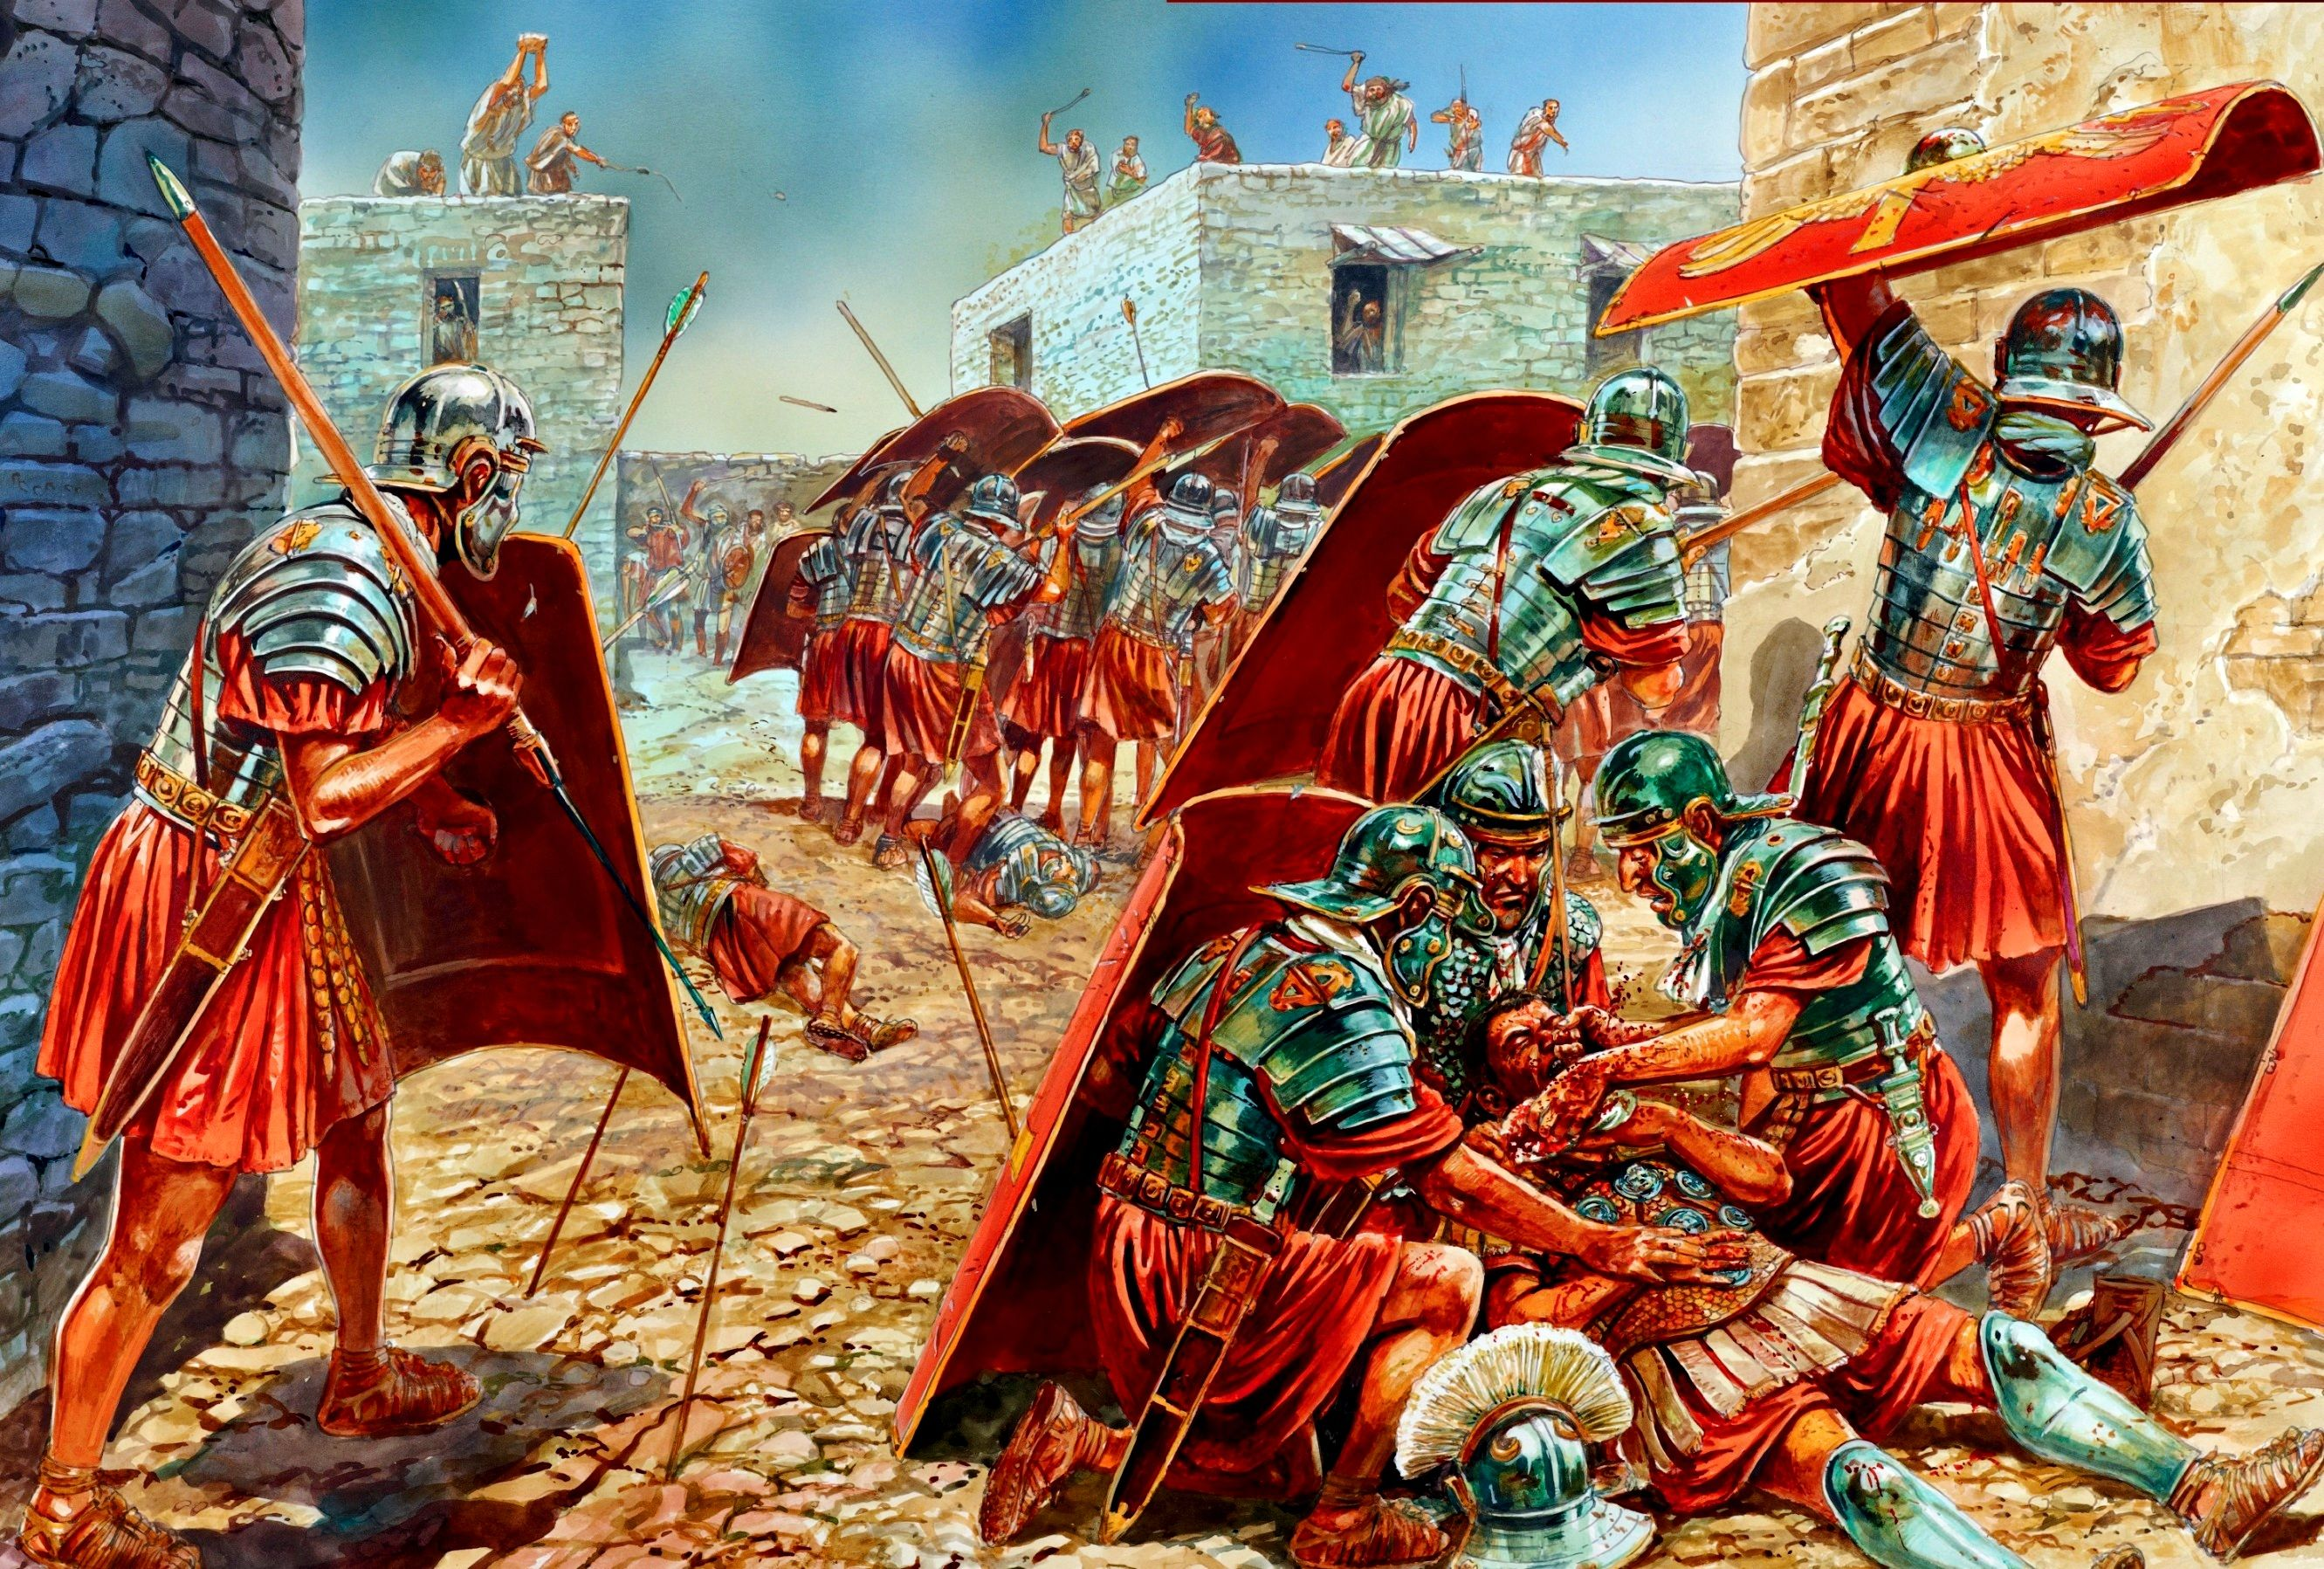 THE LAST JEWISH REVOLT AGAINST IMPERIAL ROME